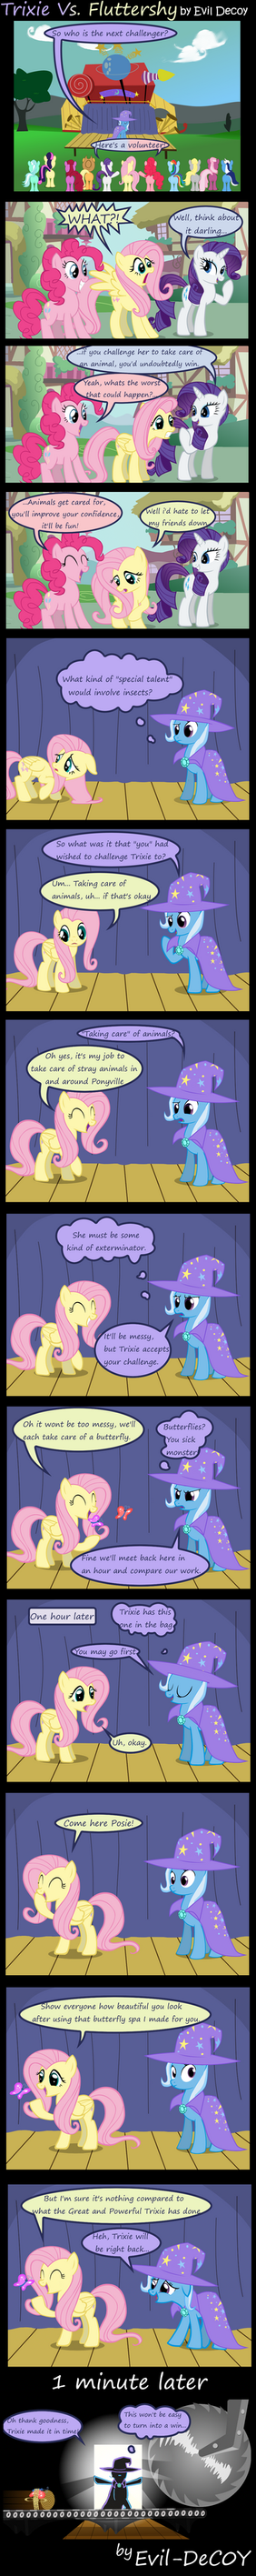 Trixie Vs. Fluttershy by Evil-DeC0Y